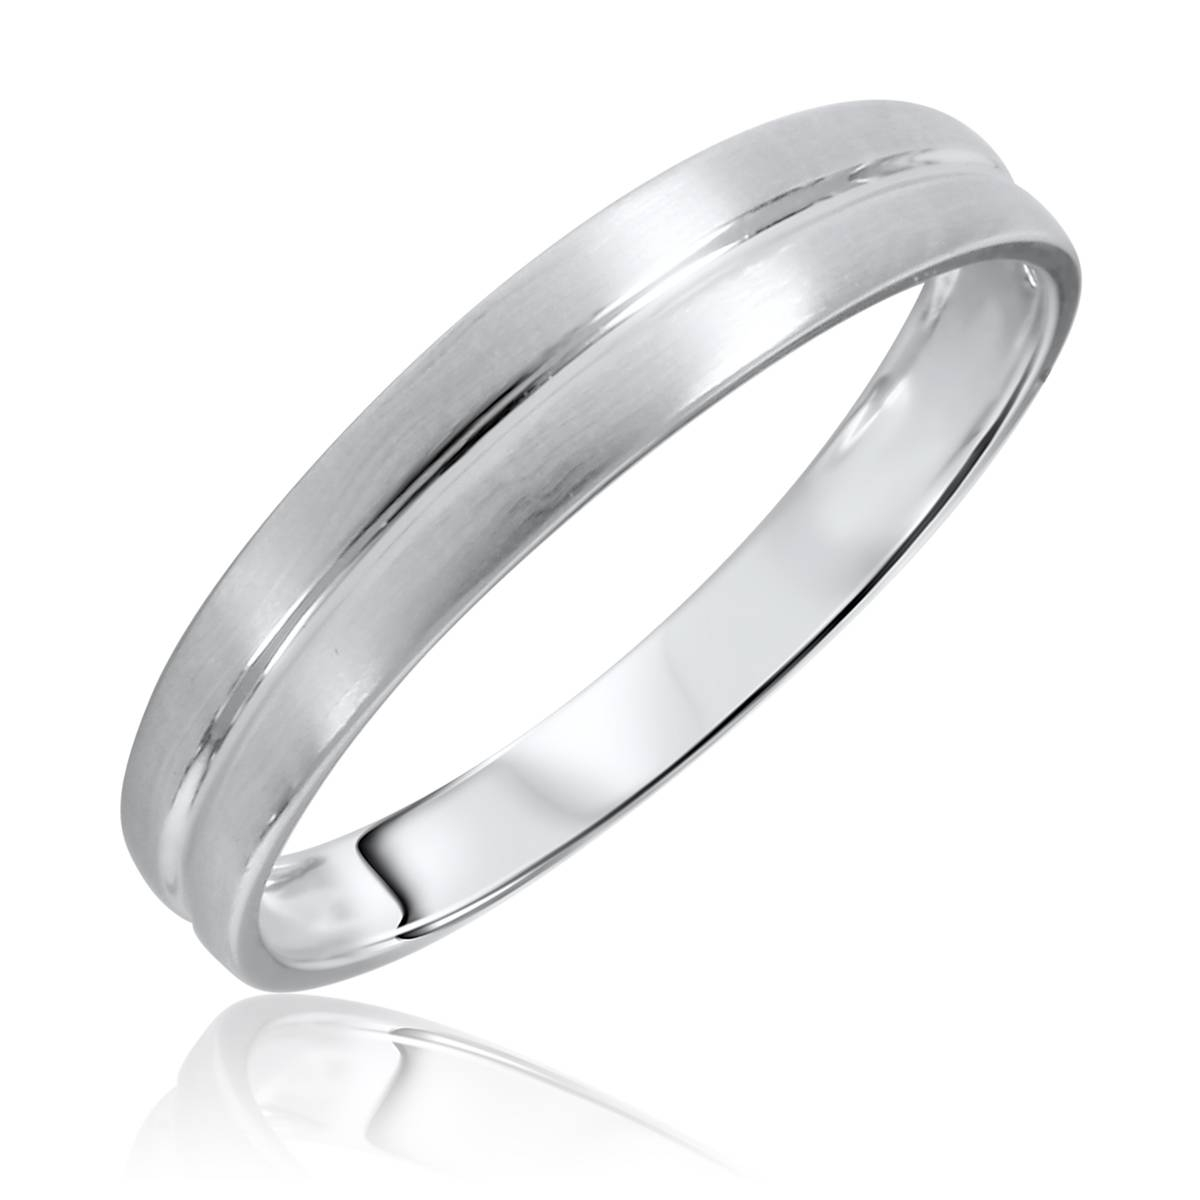 Wedding Rings : White Gold Wedding Ring Men Discount Wedding Rings Throughout White Gold Wedding Bands For Men (View 15 of 15)